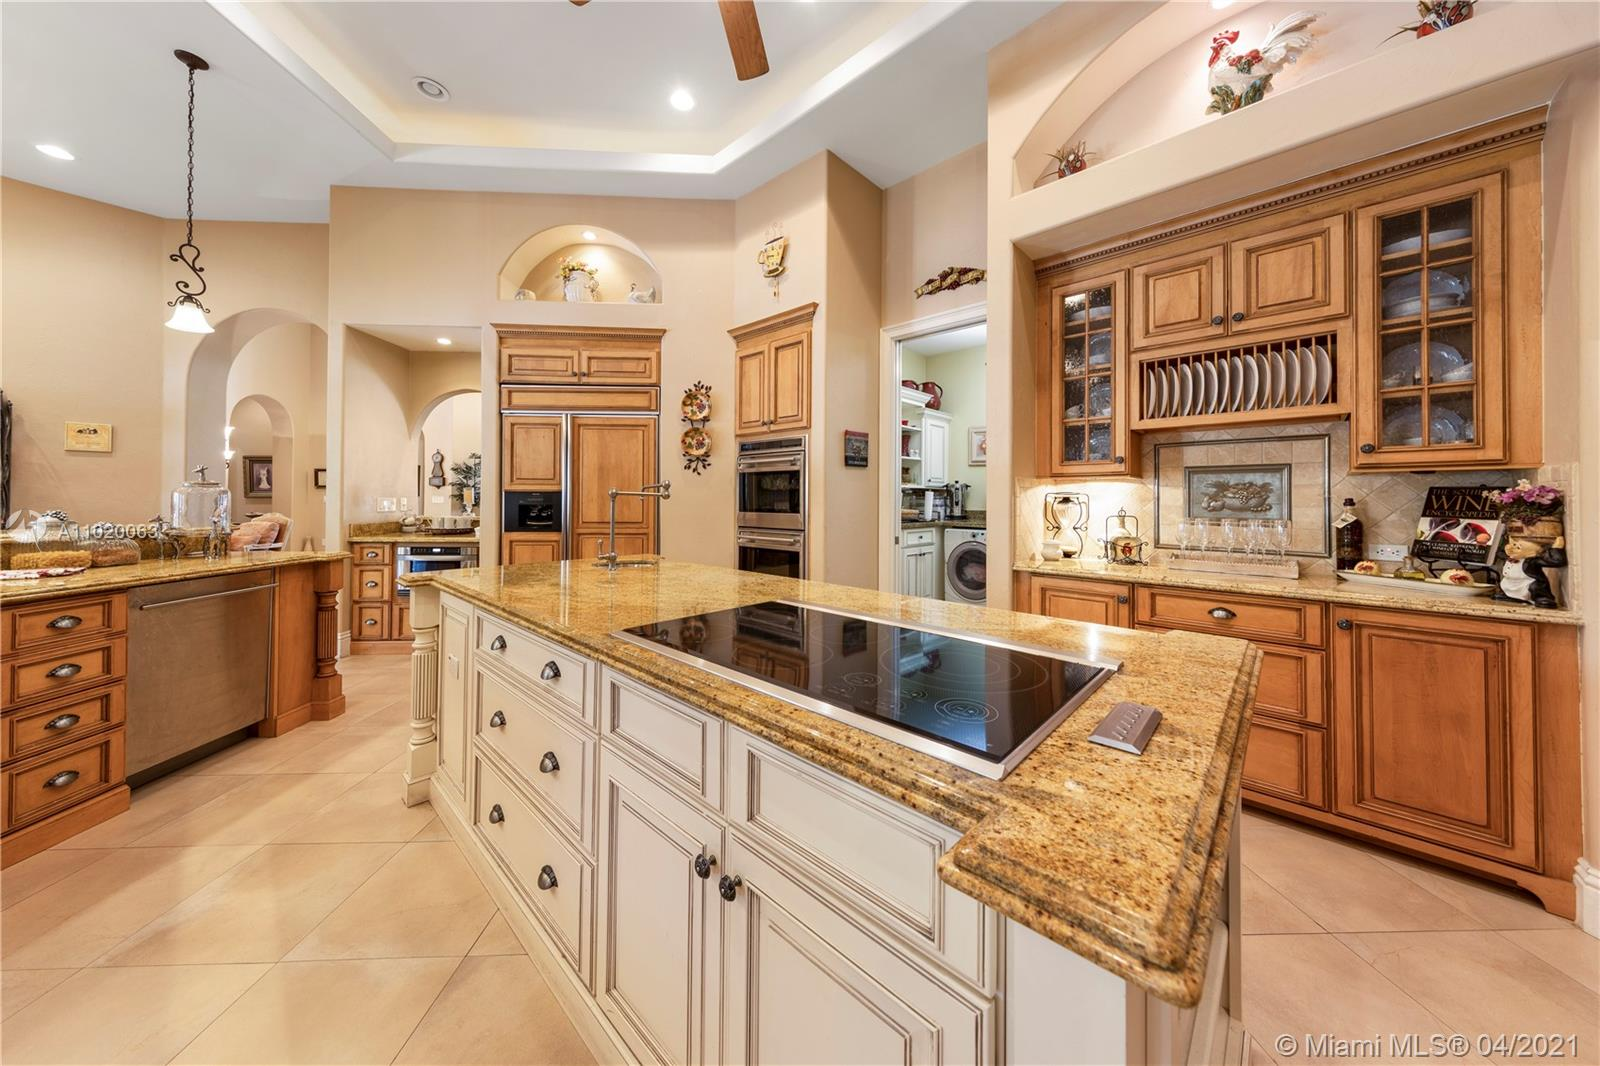 IS YOUR FAMILYS HEART OF THE HOUSE THE KITCHEN? IF SO THIS THE ONE.....GREAT SPACE FOR LARGE GATHERINGS...EASY FLOW FROM INTERIOR TO EXTERIOR ENTERTAINING..